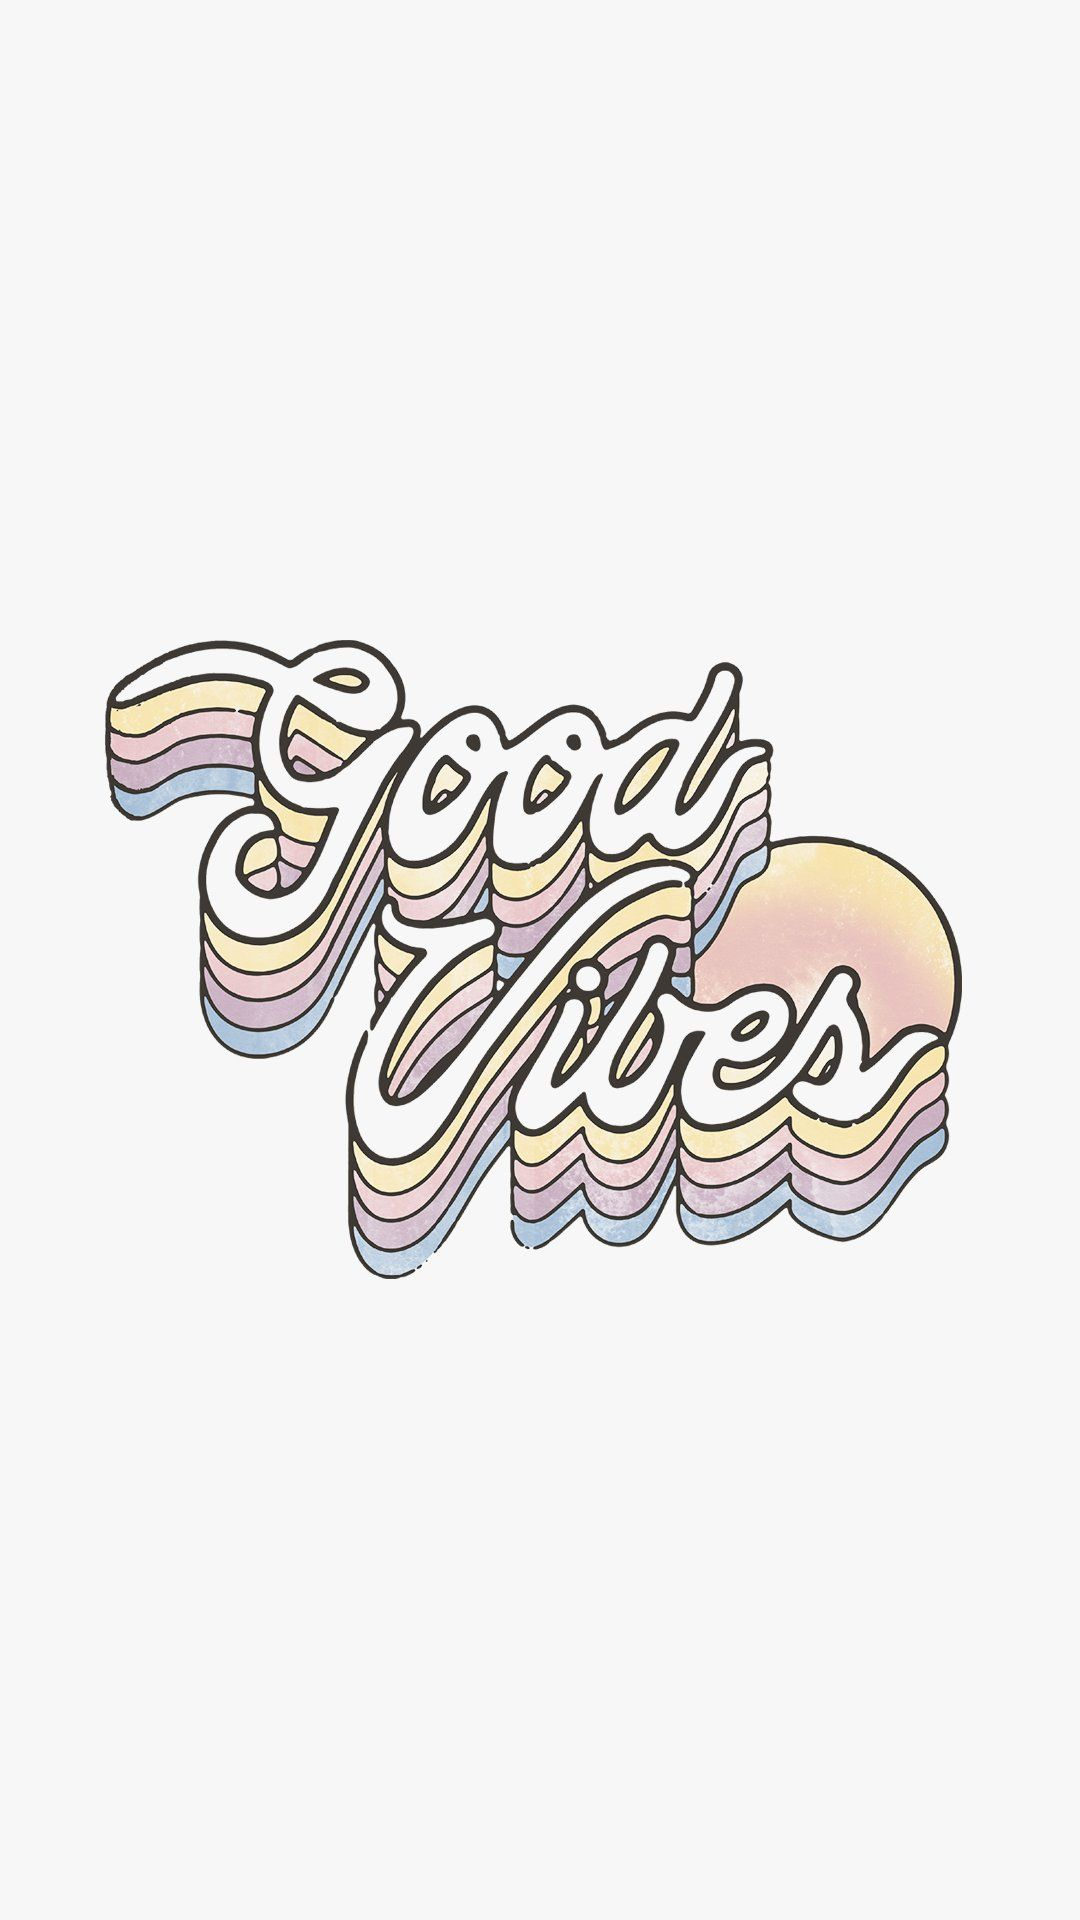 Instant Vibes Download Our Weekly Wallpaper January 18 Good Vibes Wallpaper Cute Wallpapers Wallpaper Iphone Cute